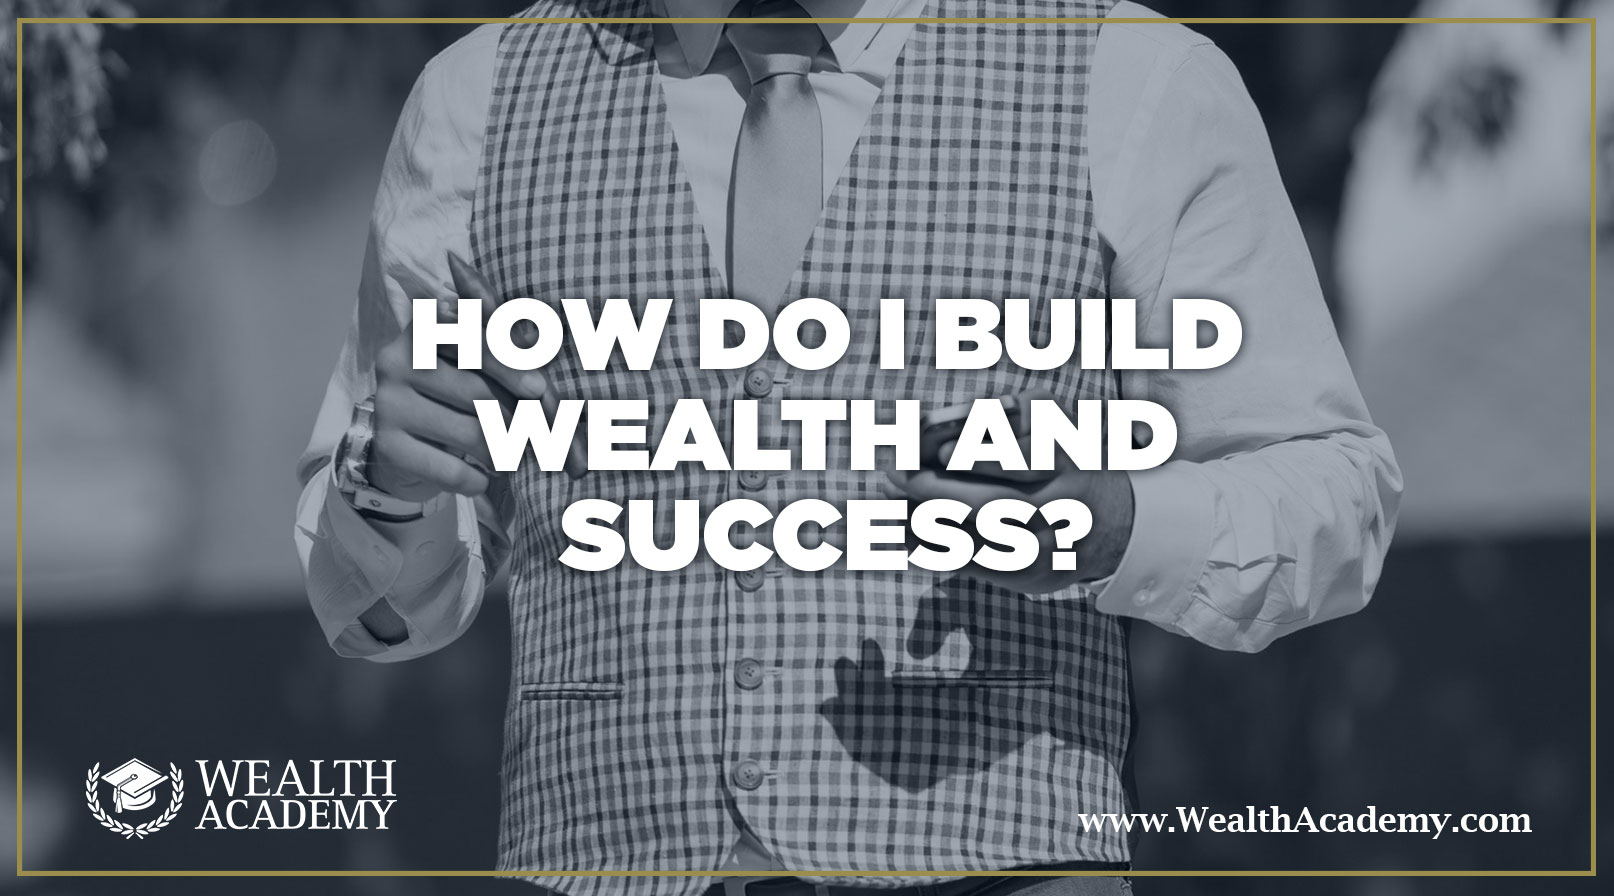 Investment strategies archives wealth academy shaqir hussyins startup business model success and wealth crossword cluehow to be rich and successful in lifewealth malvernweather Choice Image